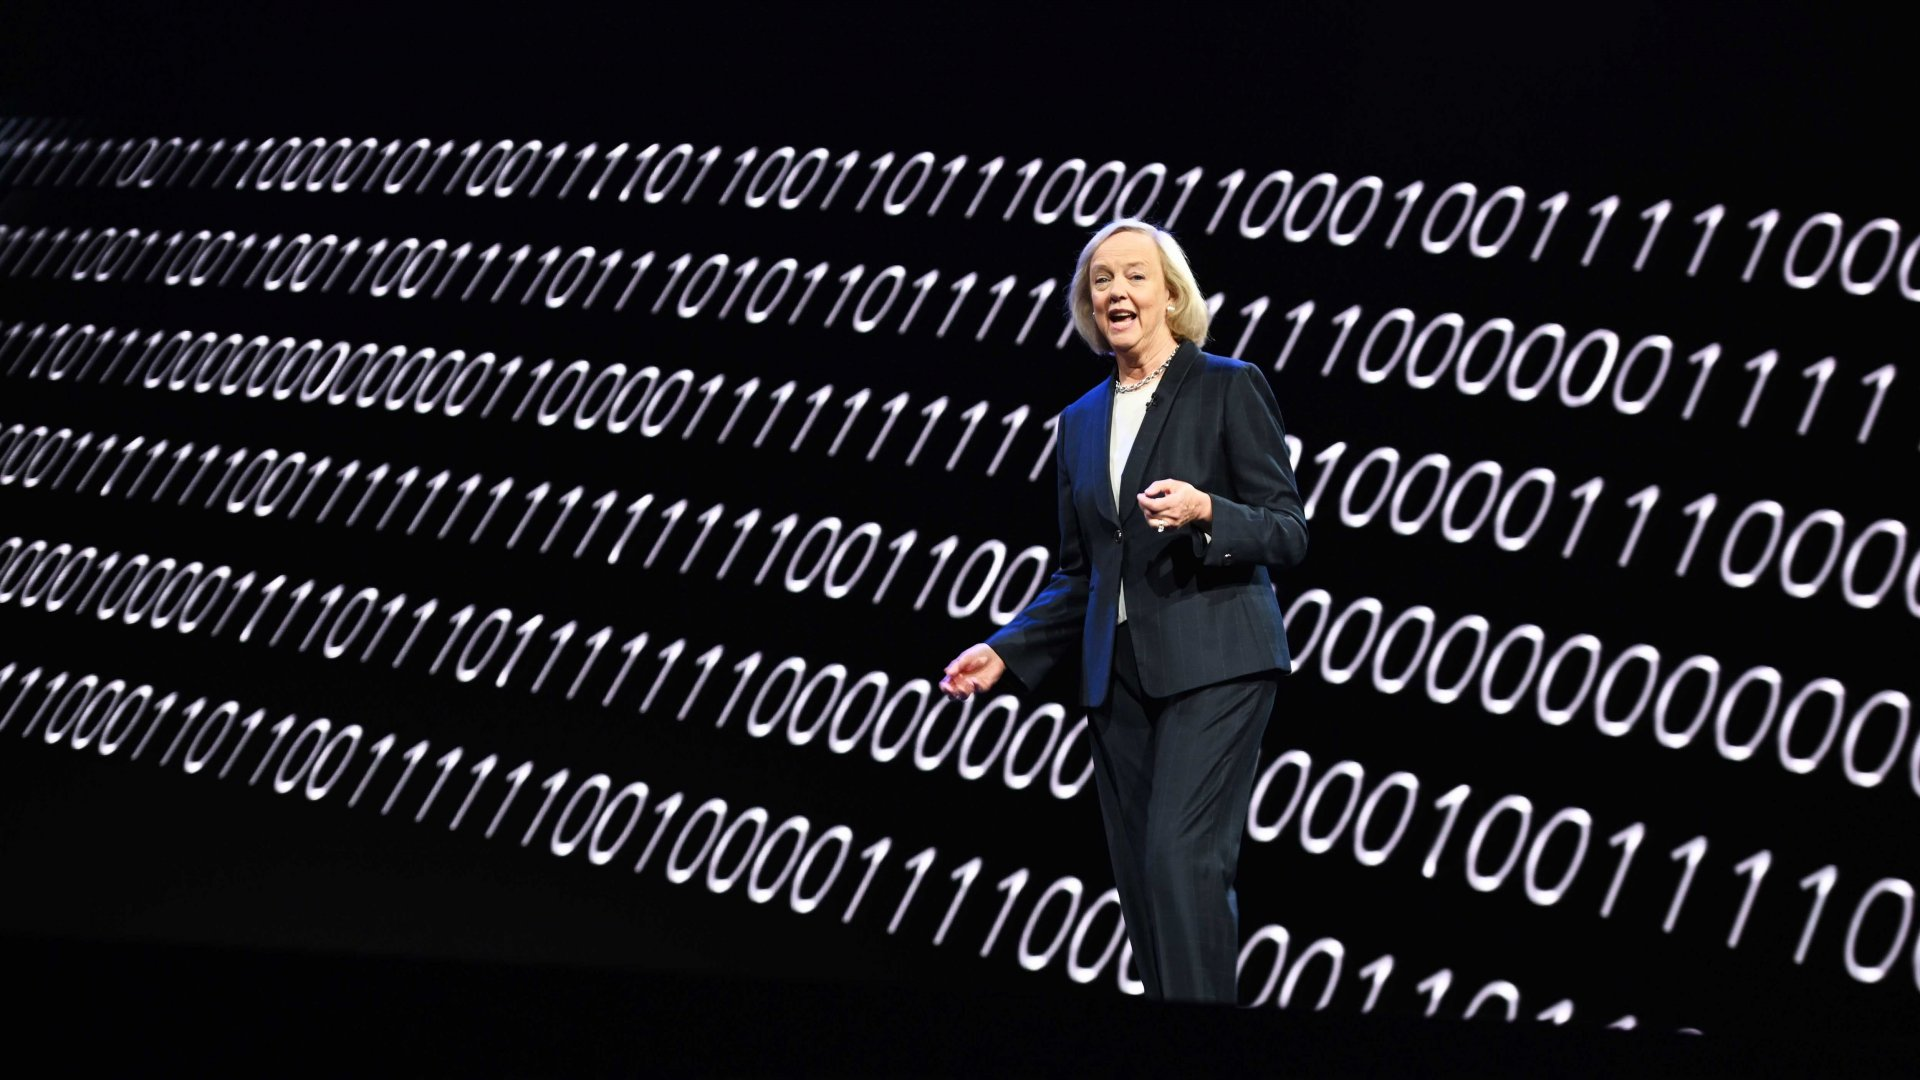 Quibi CEO Meg Whitman speaks about the short-form video streaming service during a keynote address January 8, 2020 at the 2020 Consumer Electronics Show (CES) in Las Vegas.